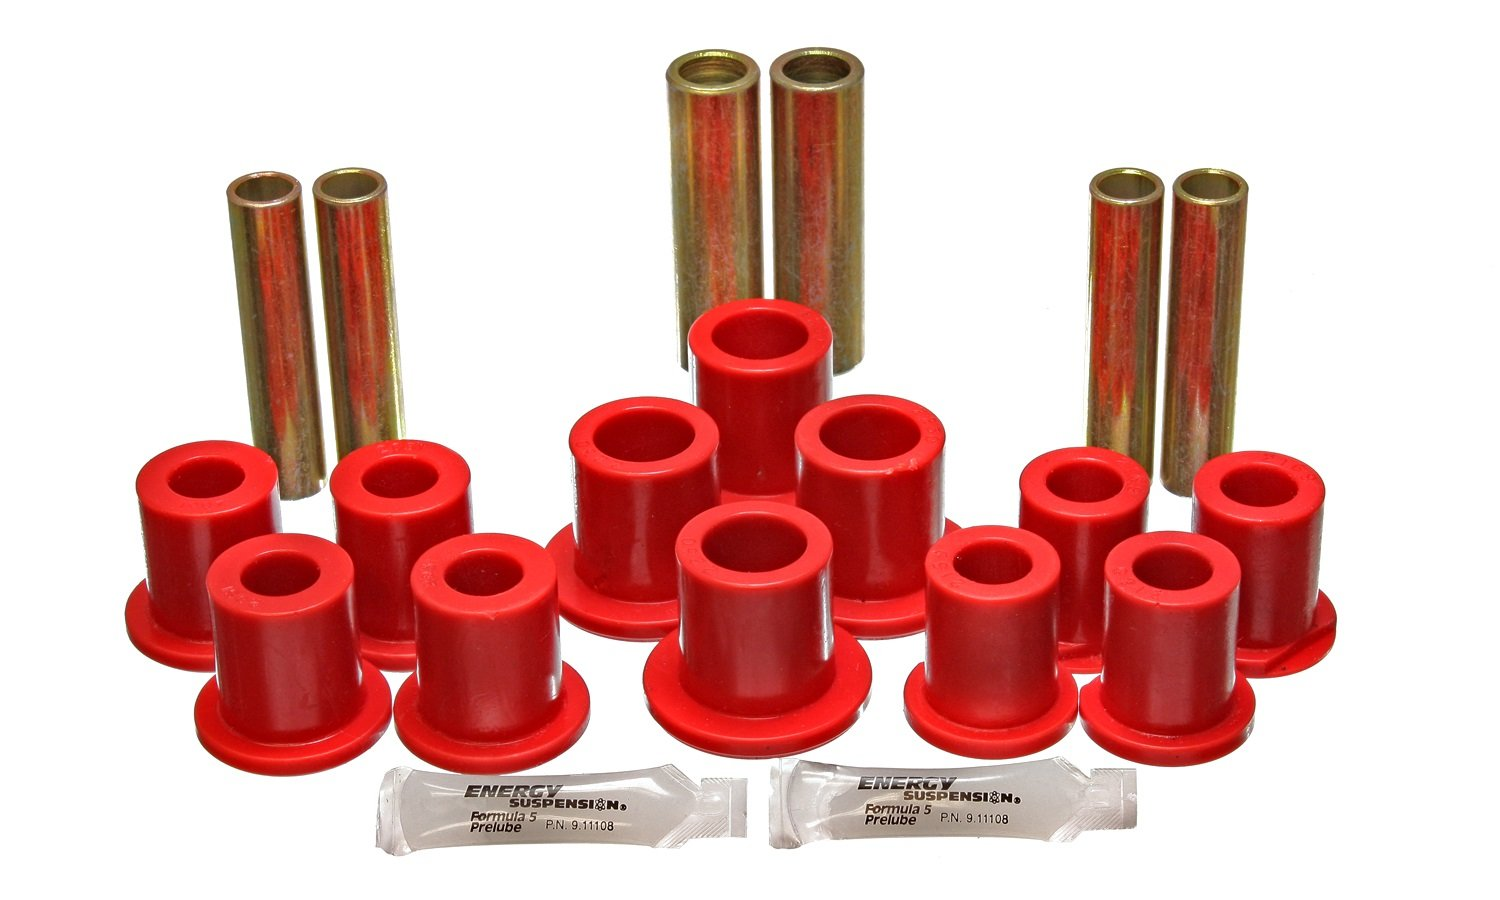 Energy Suspension 4.2145R Rear Spring Bushing Complete Set for Ford